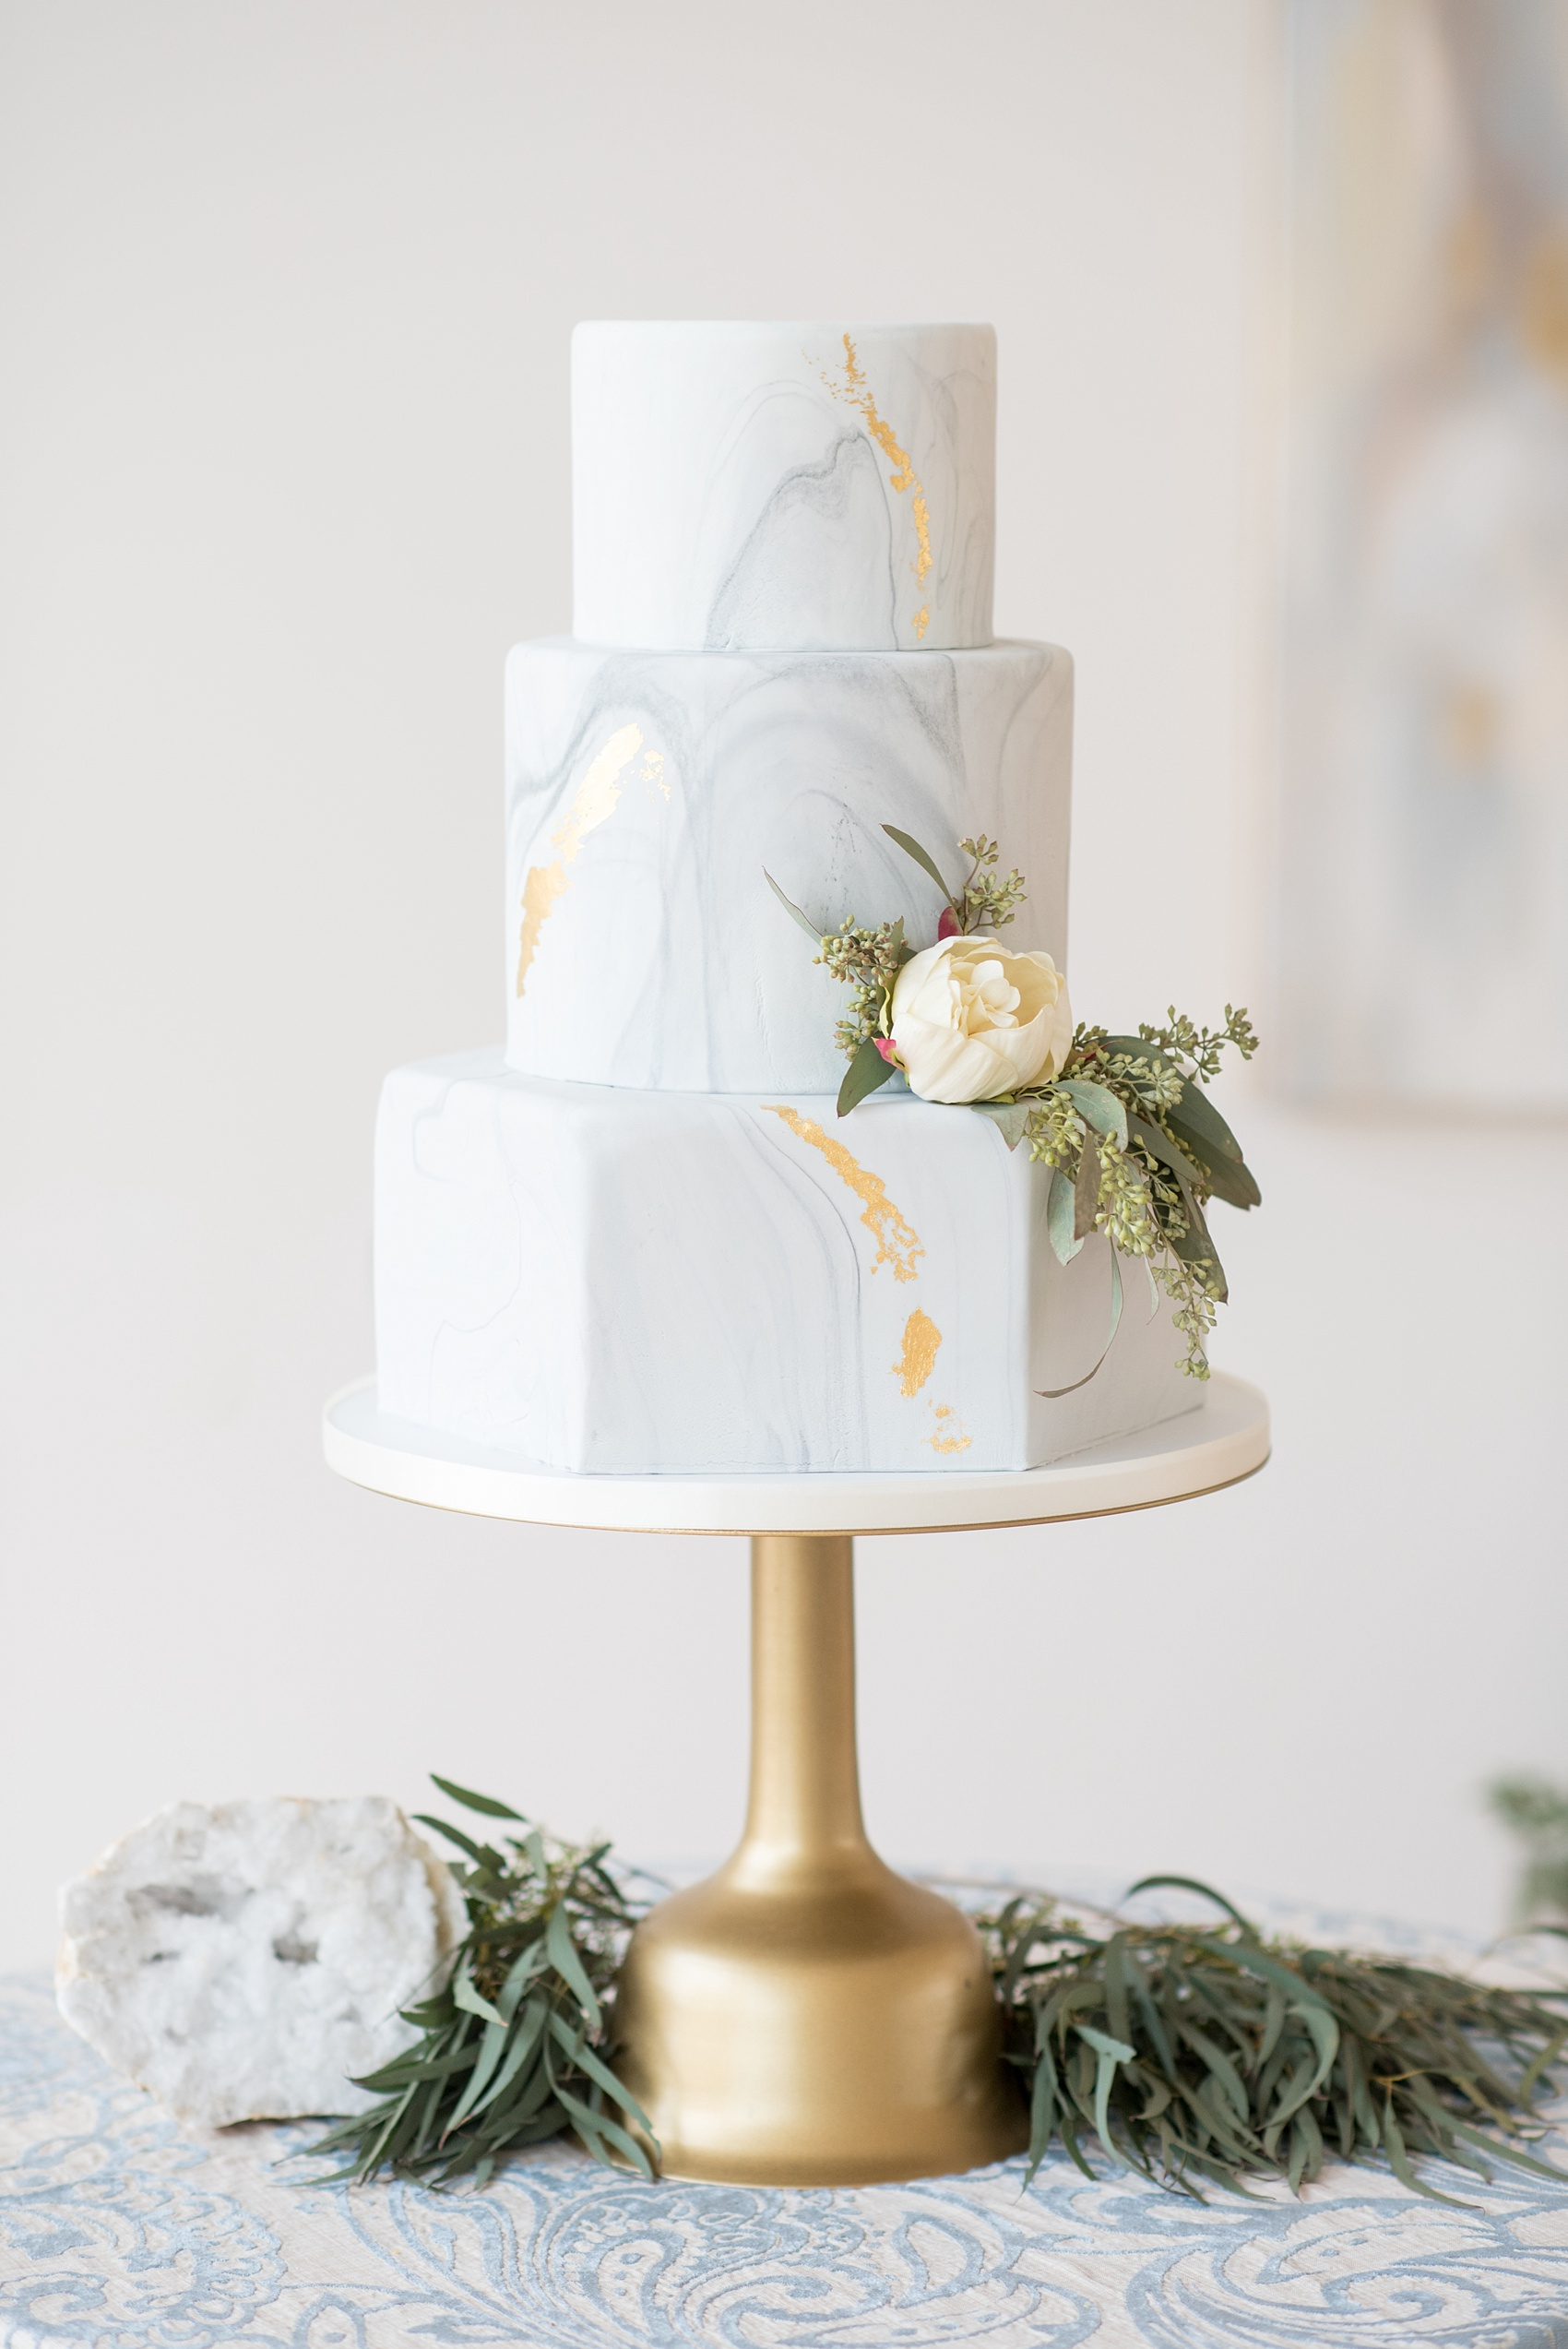 The Glass Box Raleigh wedding photos by Mikkel Paige Photography. Picture of a grey and white marble hexagonal tiered cake.